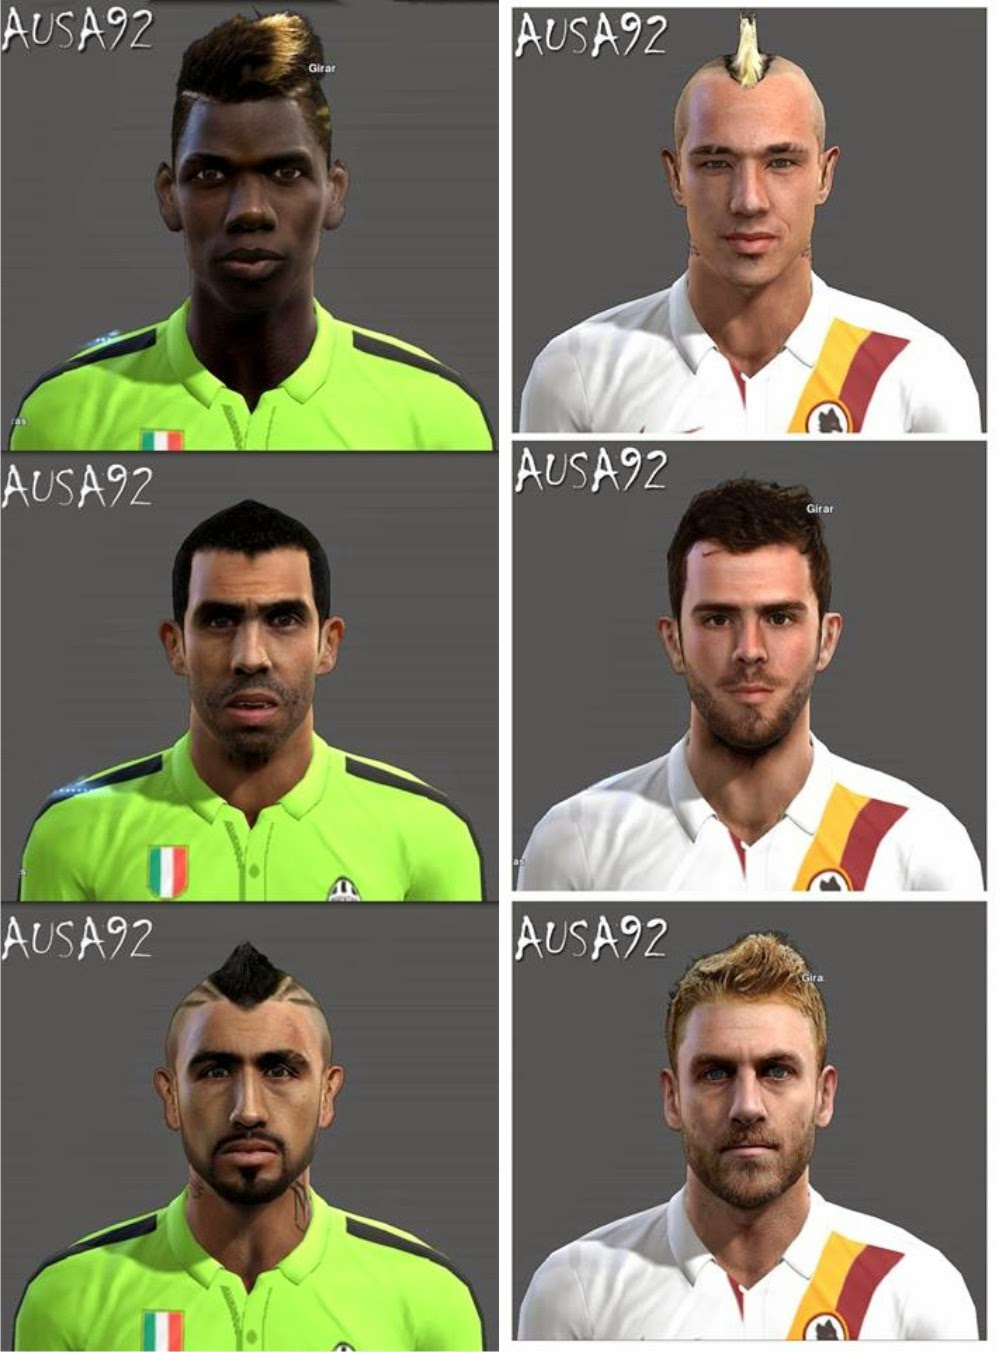 PES 2013 Juventus & AS Roma Facepack By Ausa92